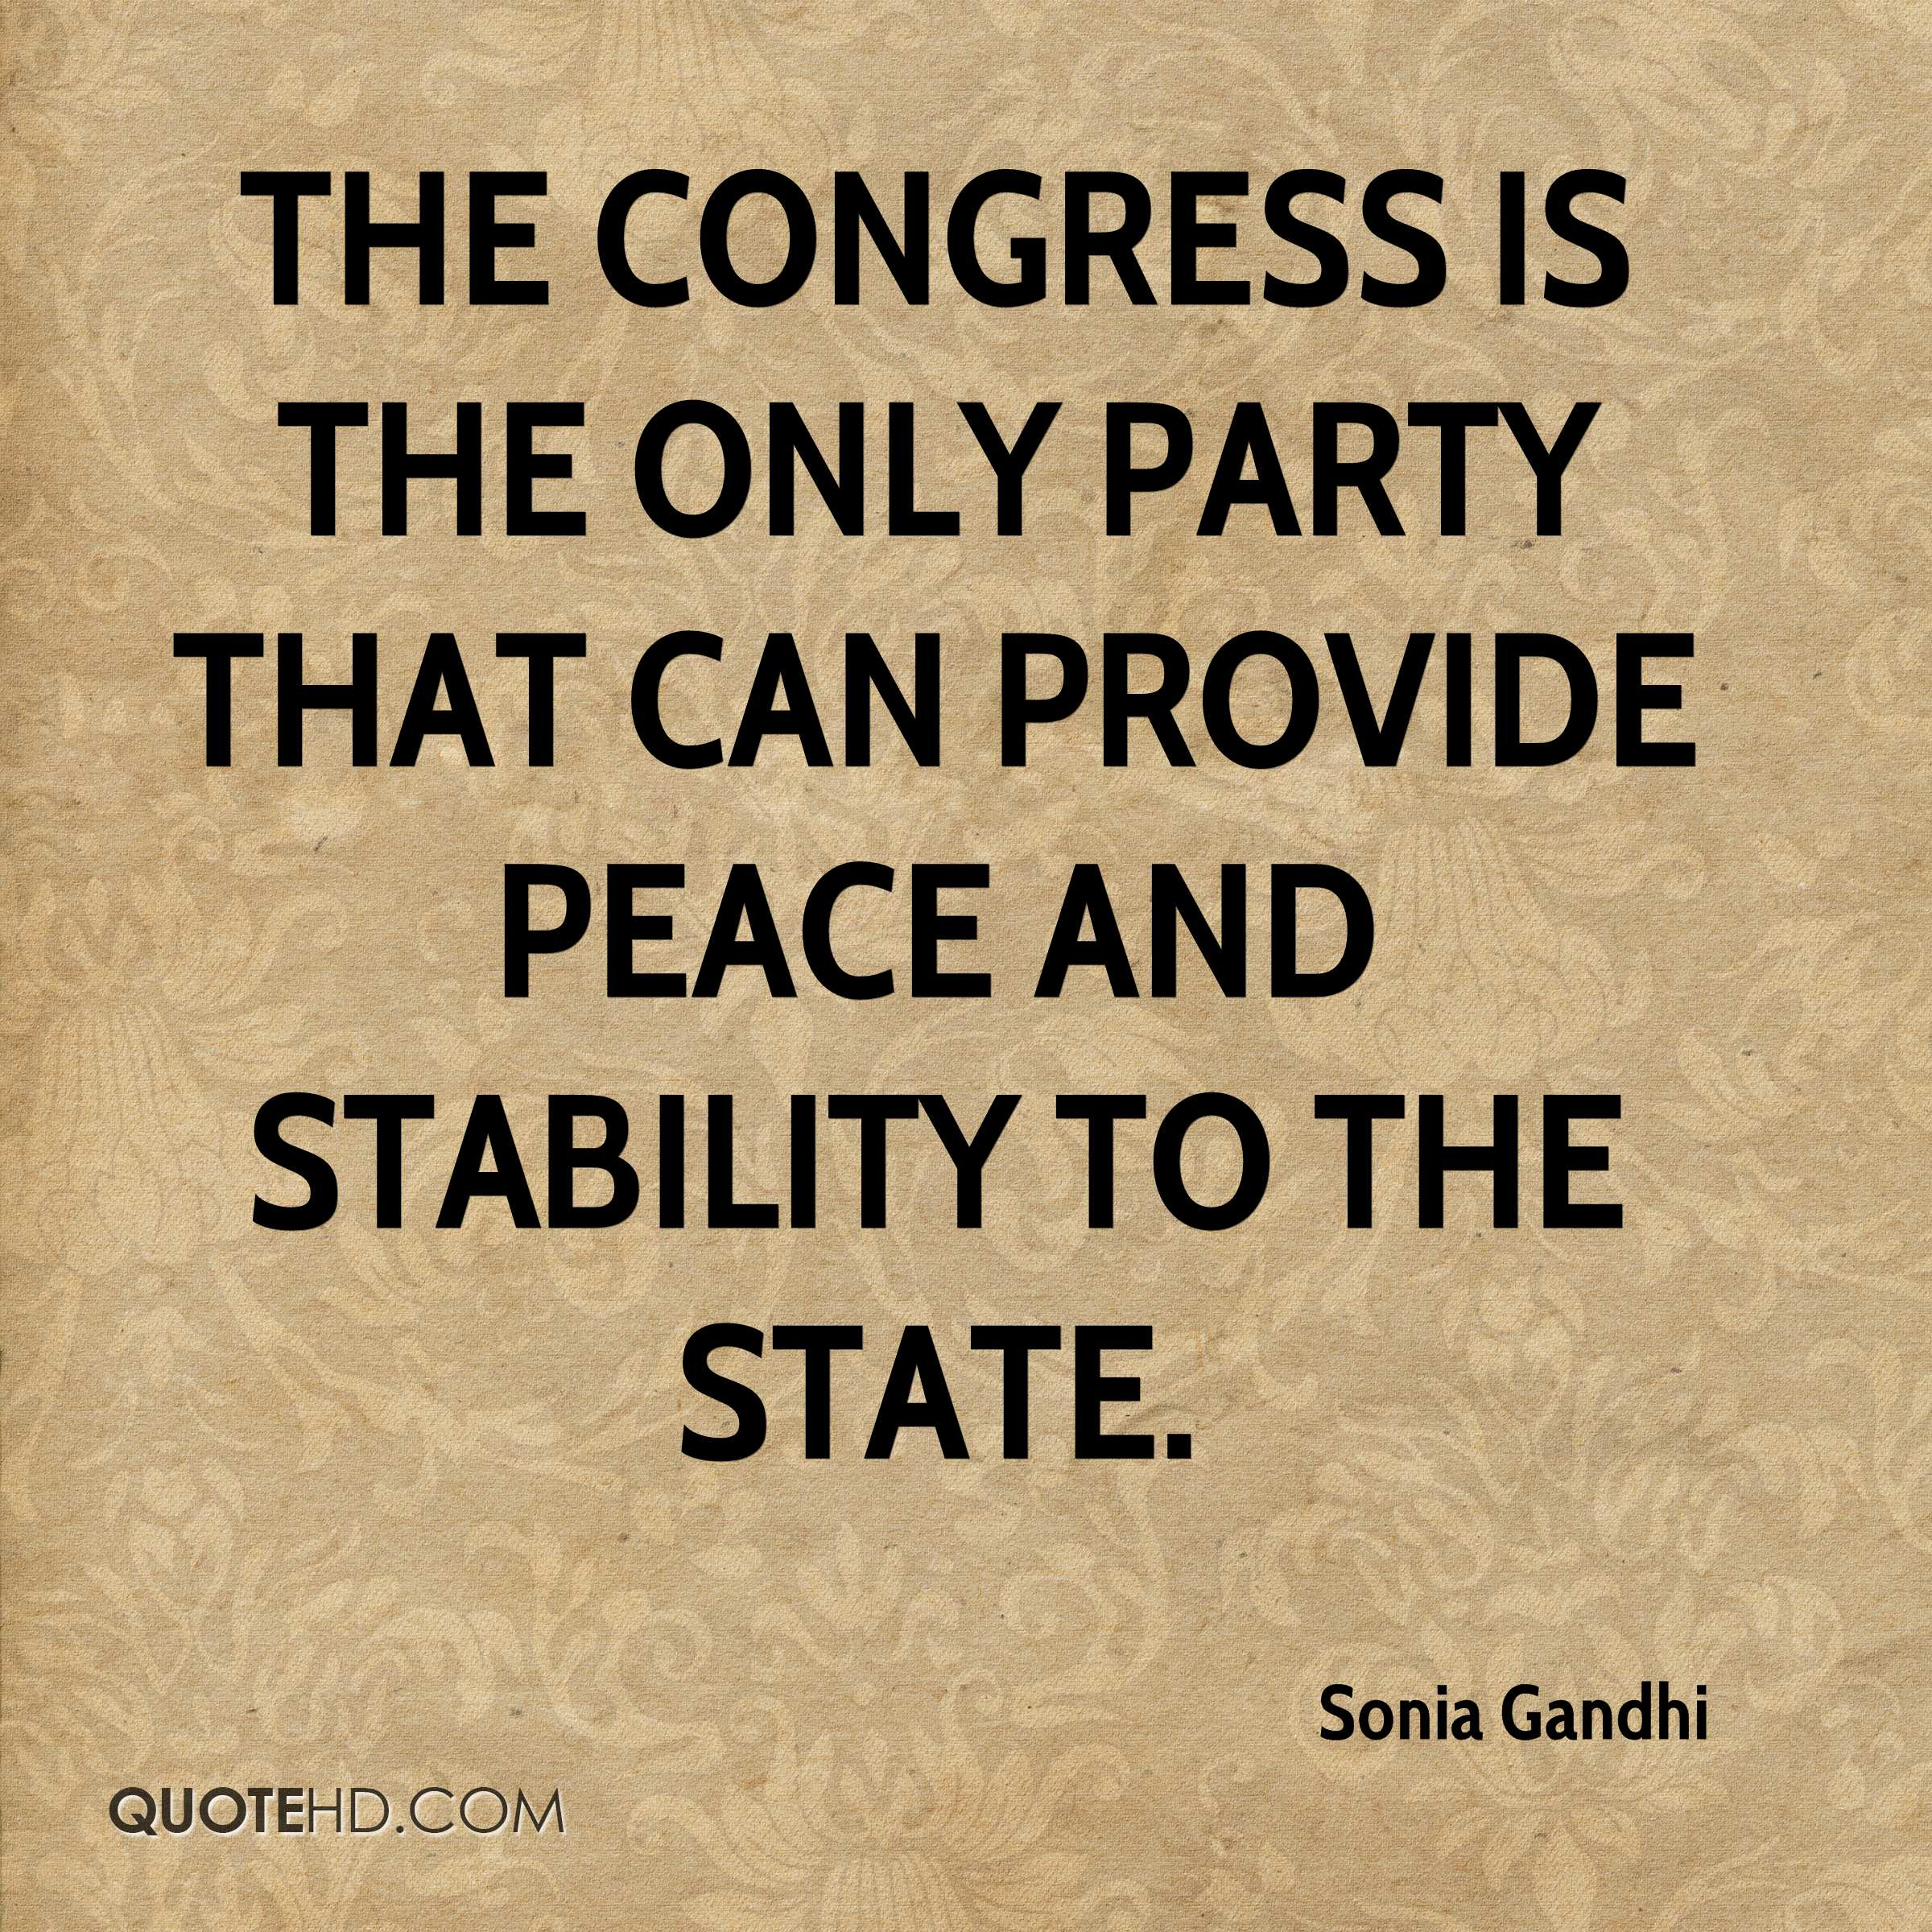 The Congress is the only party that can provide peace and stability to the state.